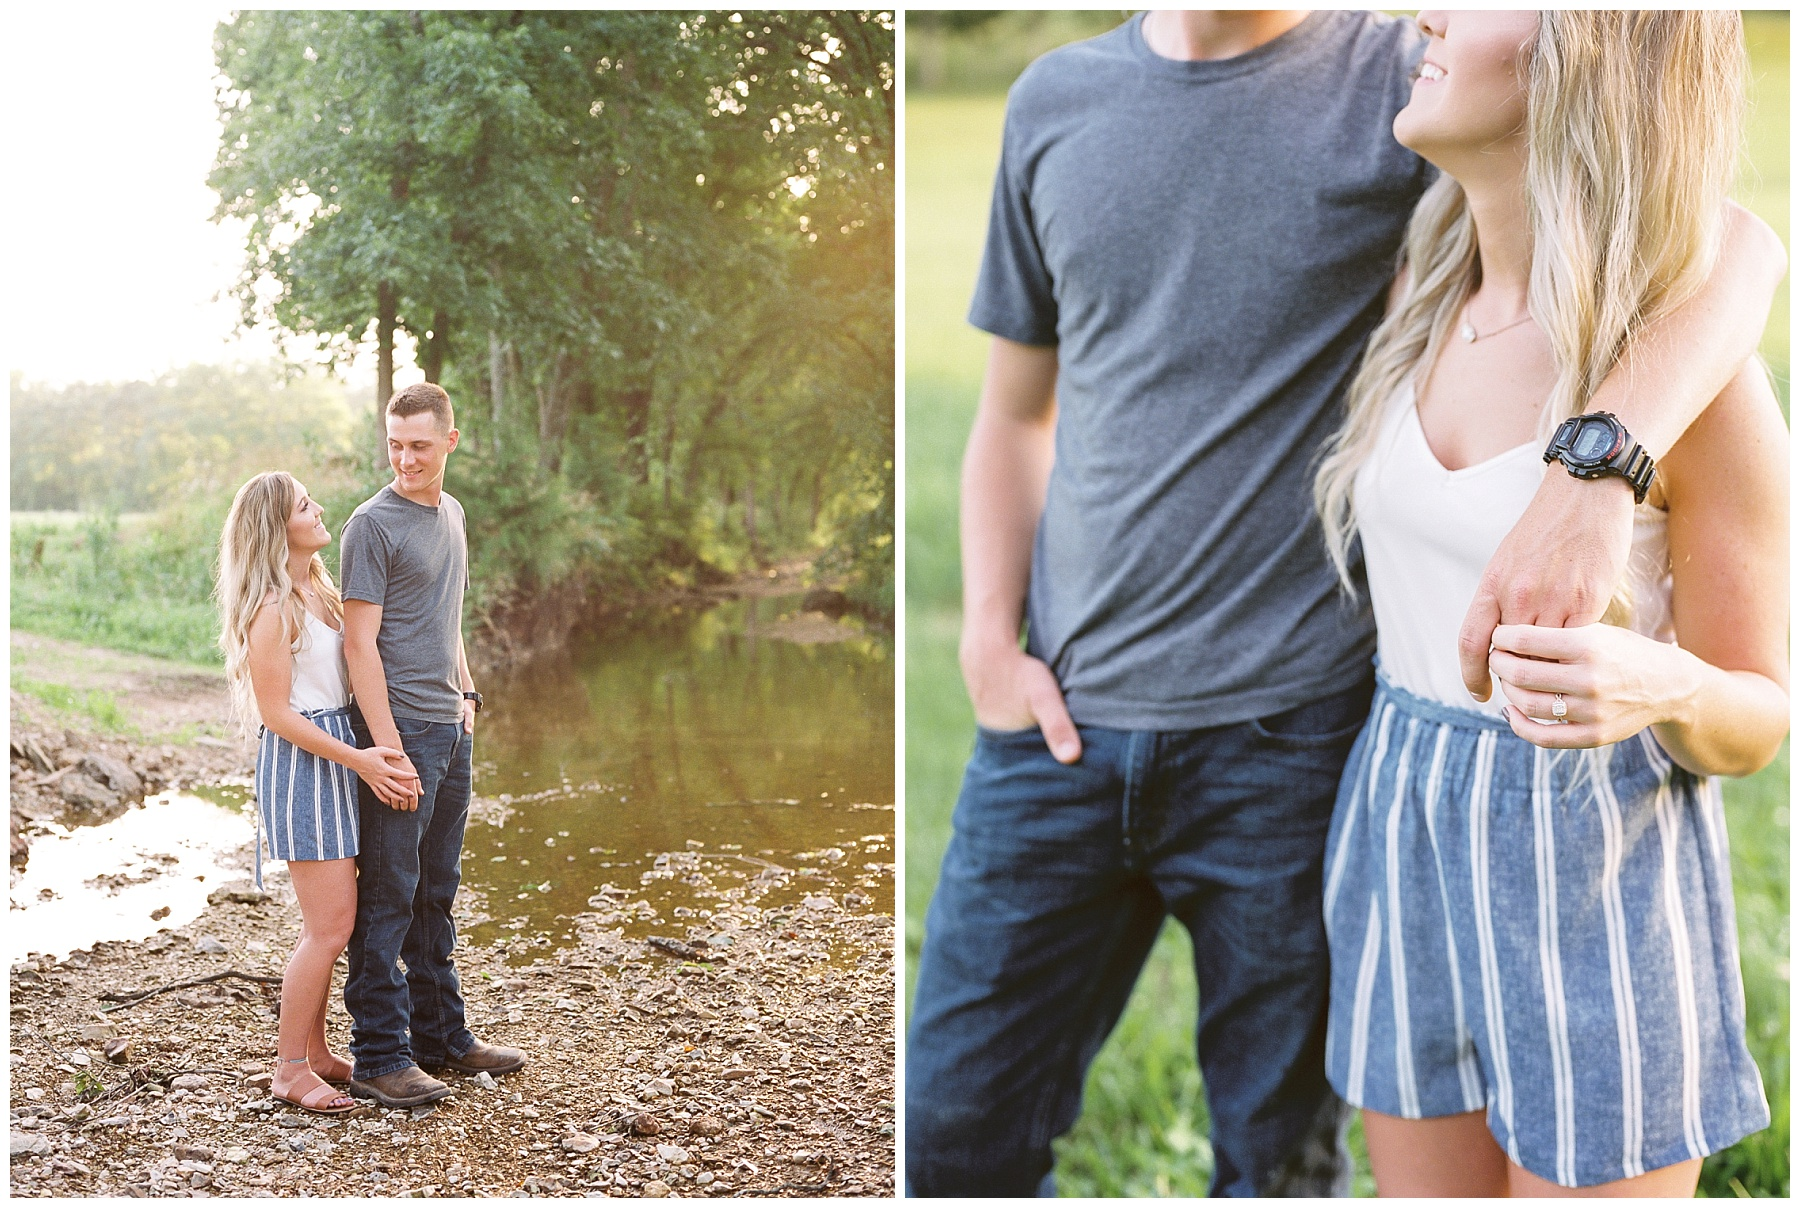 Golden Hour Summer Engagement Session at Lakeside Valley and Vineyards at Kempkers Back 40 by Kelsi Kliethermes Photography Best Missouri and Maui Wedding Photographer_0014.jpg